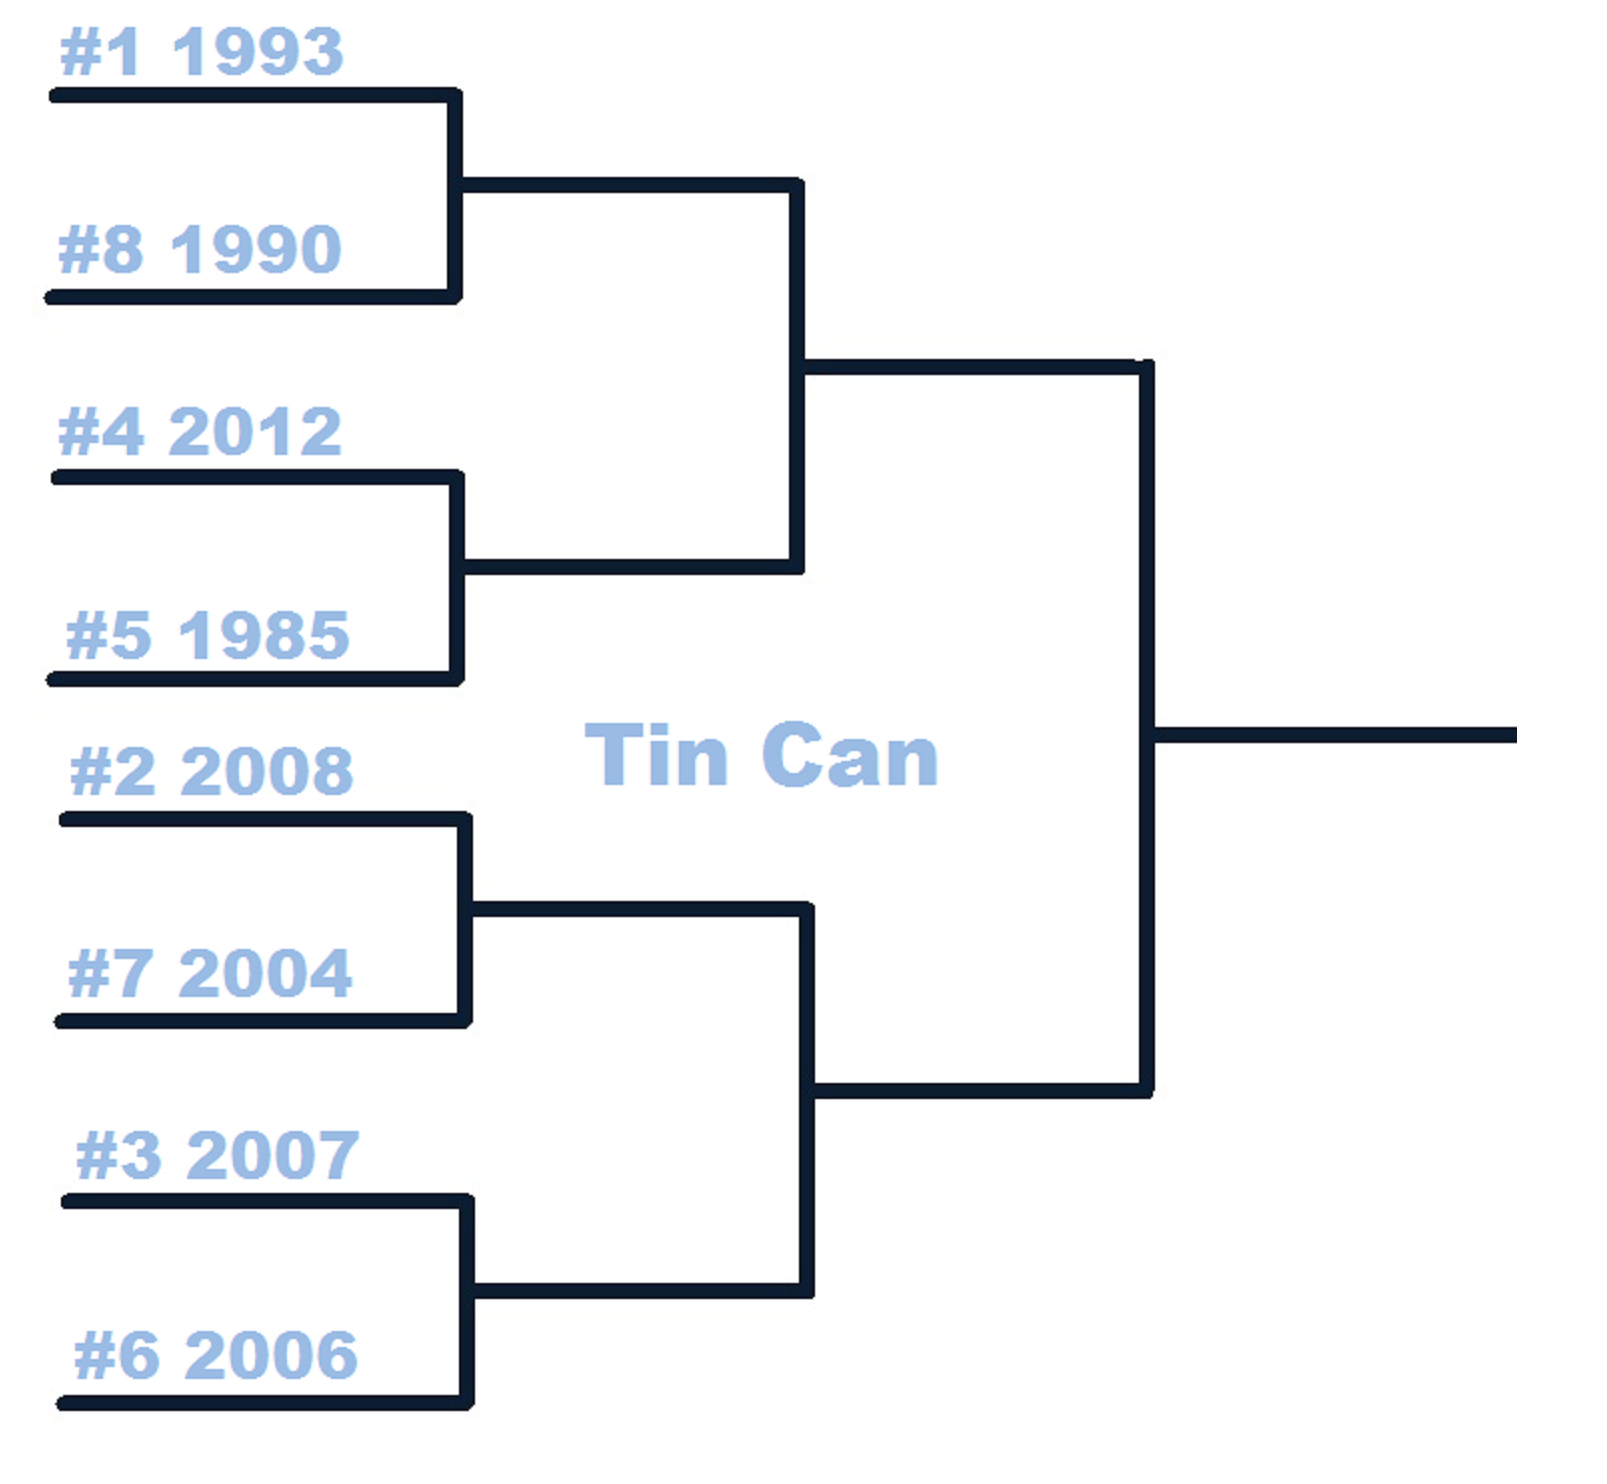 Thb_countdown_tournament-tin_can_medium